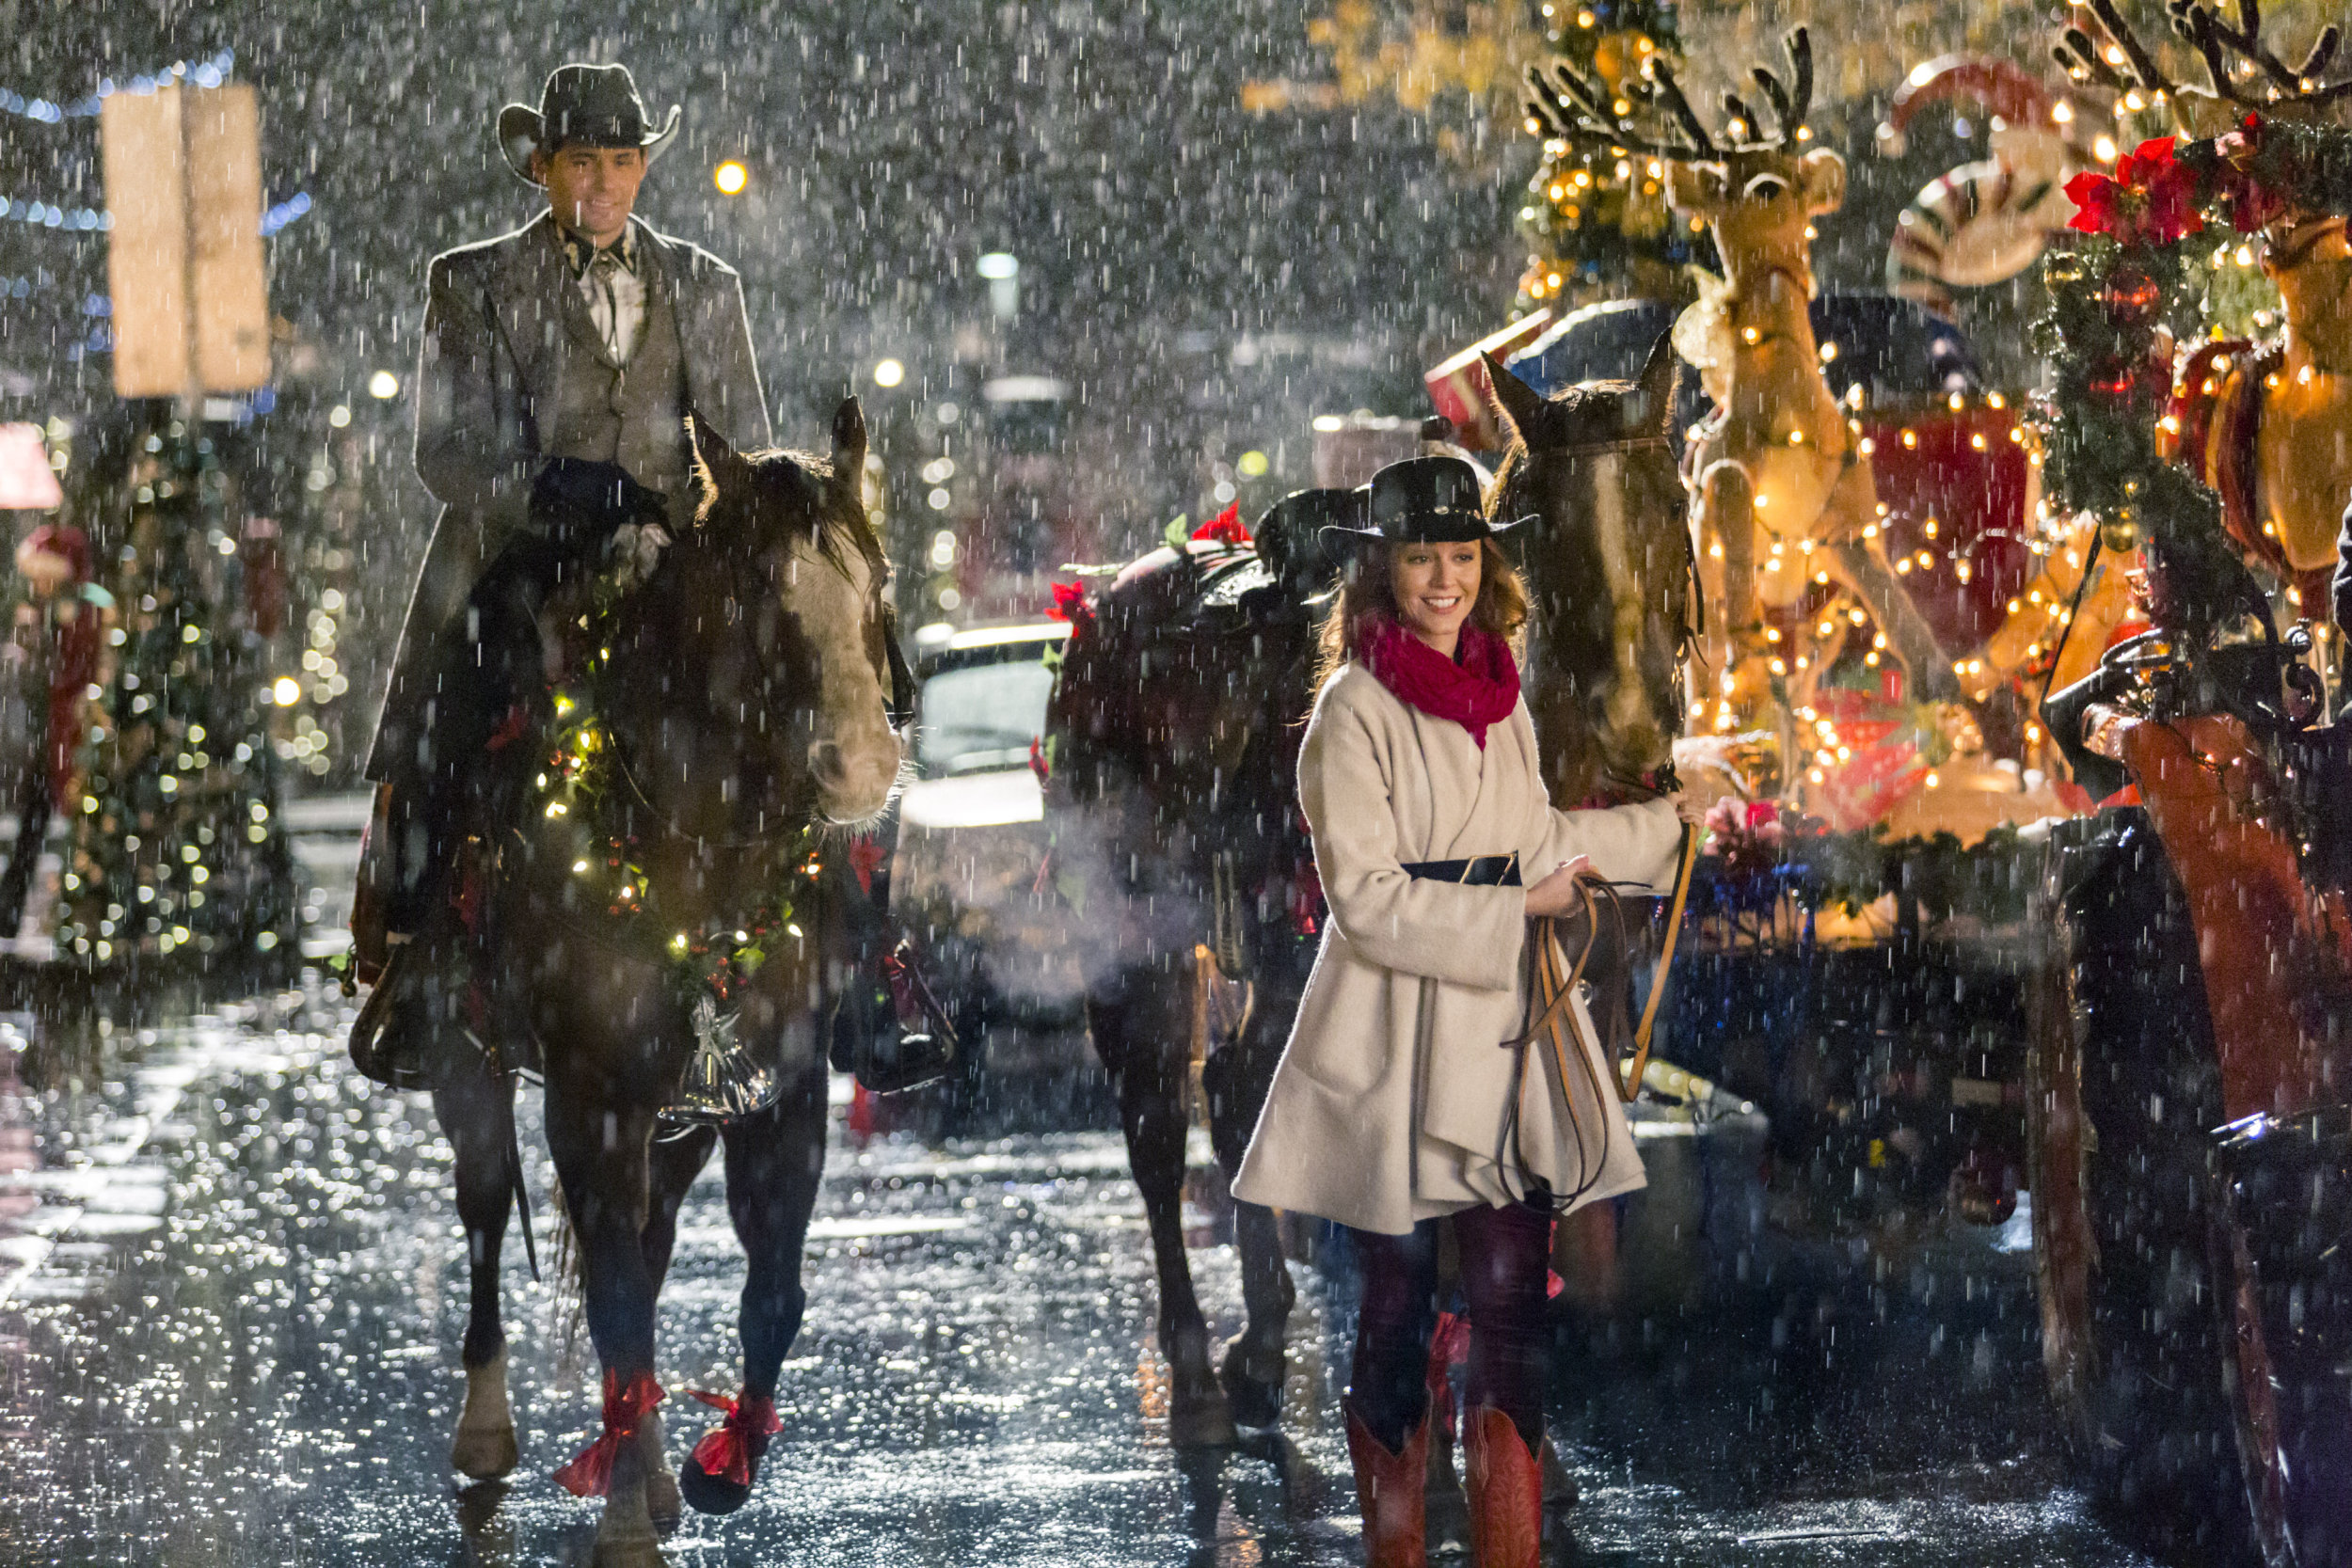 This entire suit and hat is 100X. (© Hallmark Channel)